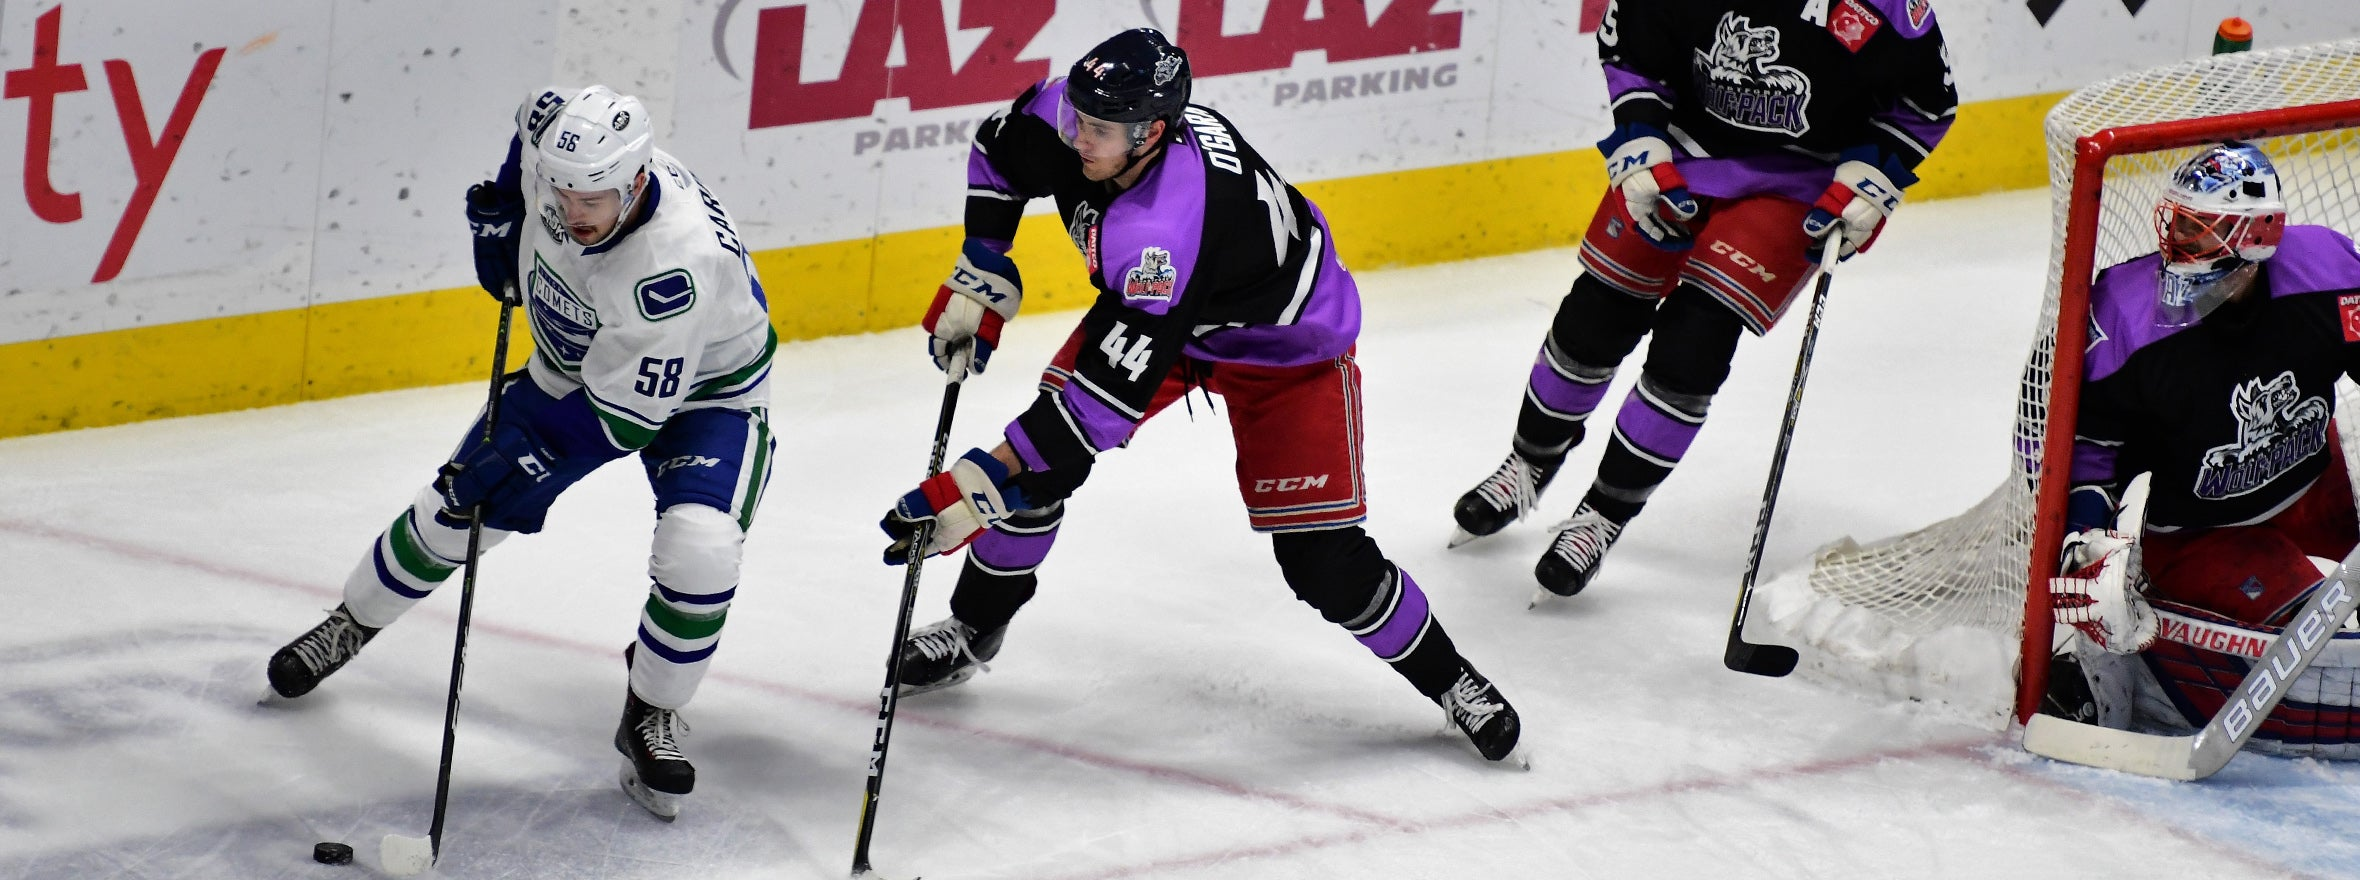 FIVE UNANSWERED GOALS SINK COMETS